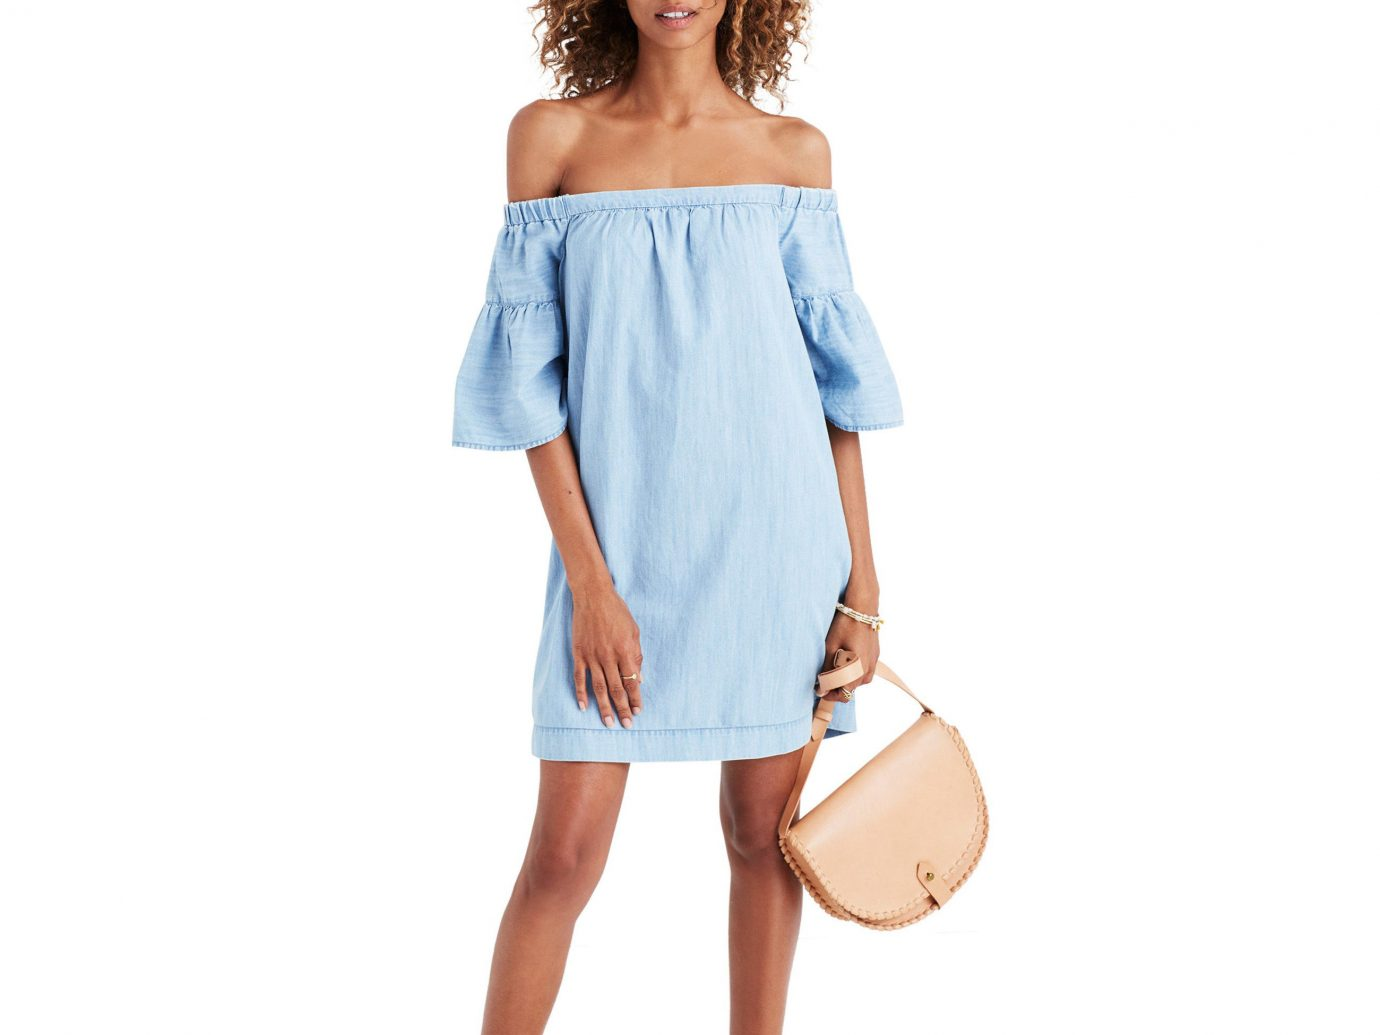 Style + Design person joint shoulder day dress electric blue neck fashion model posing